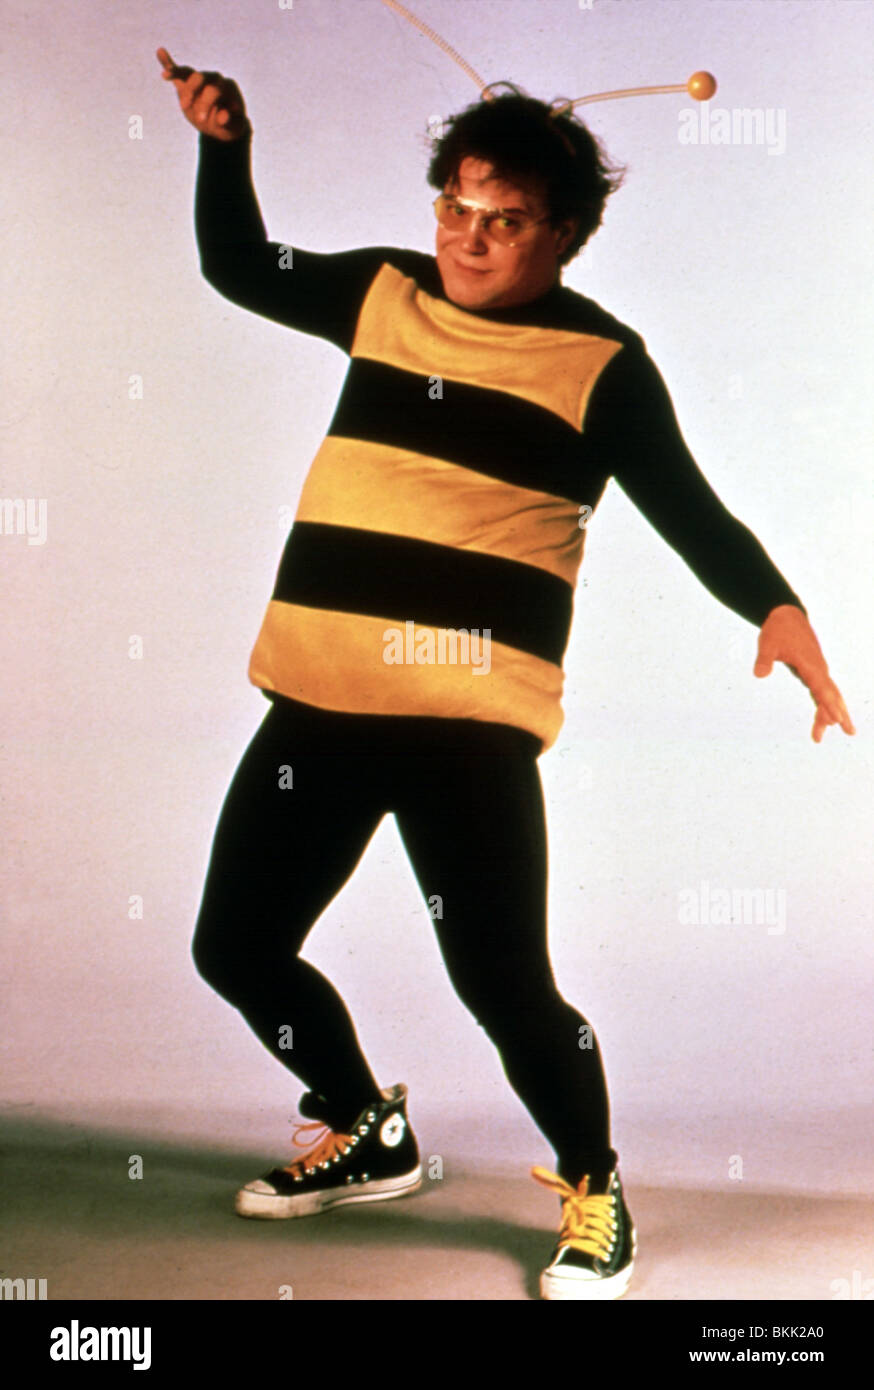 WIRED -1989 MICHAEL CHIKLIS Stock Photo: 29307768 - Alamy